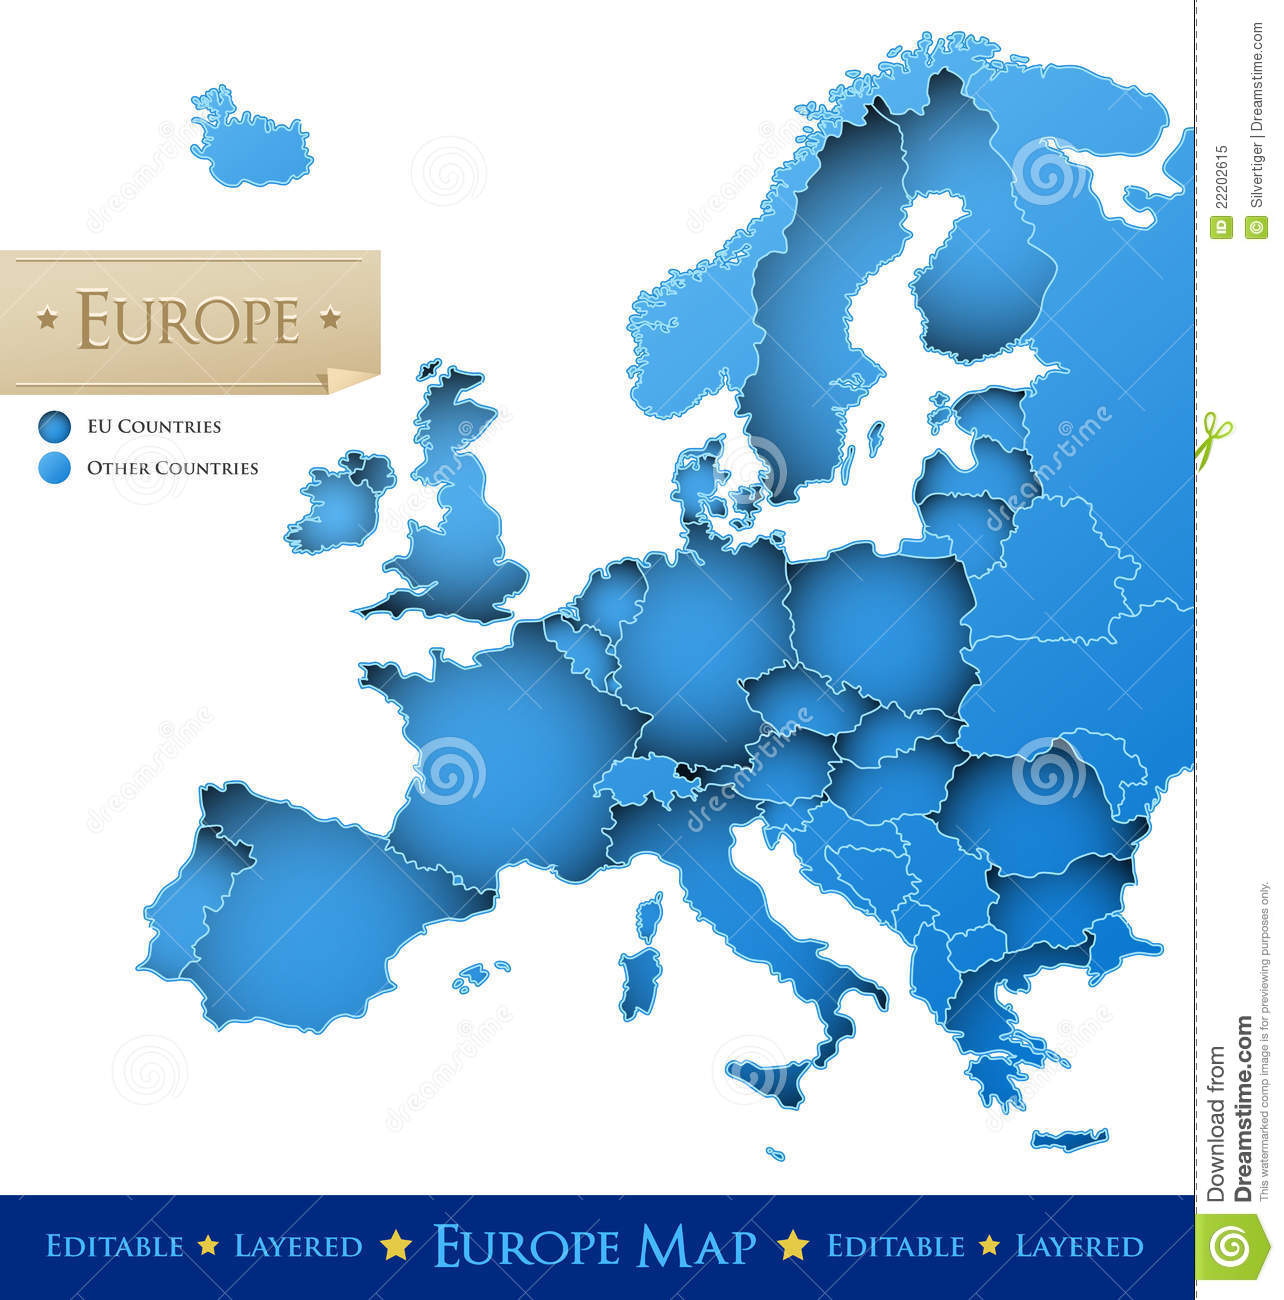 Europe vector map stock vector Image of layered national 22202615